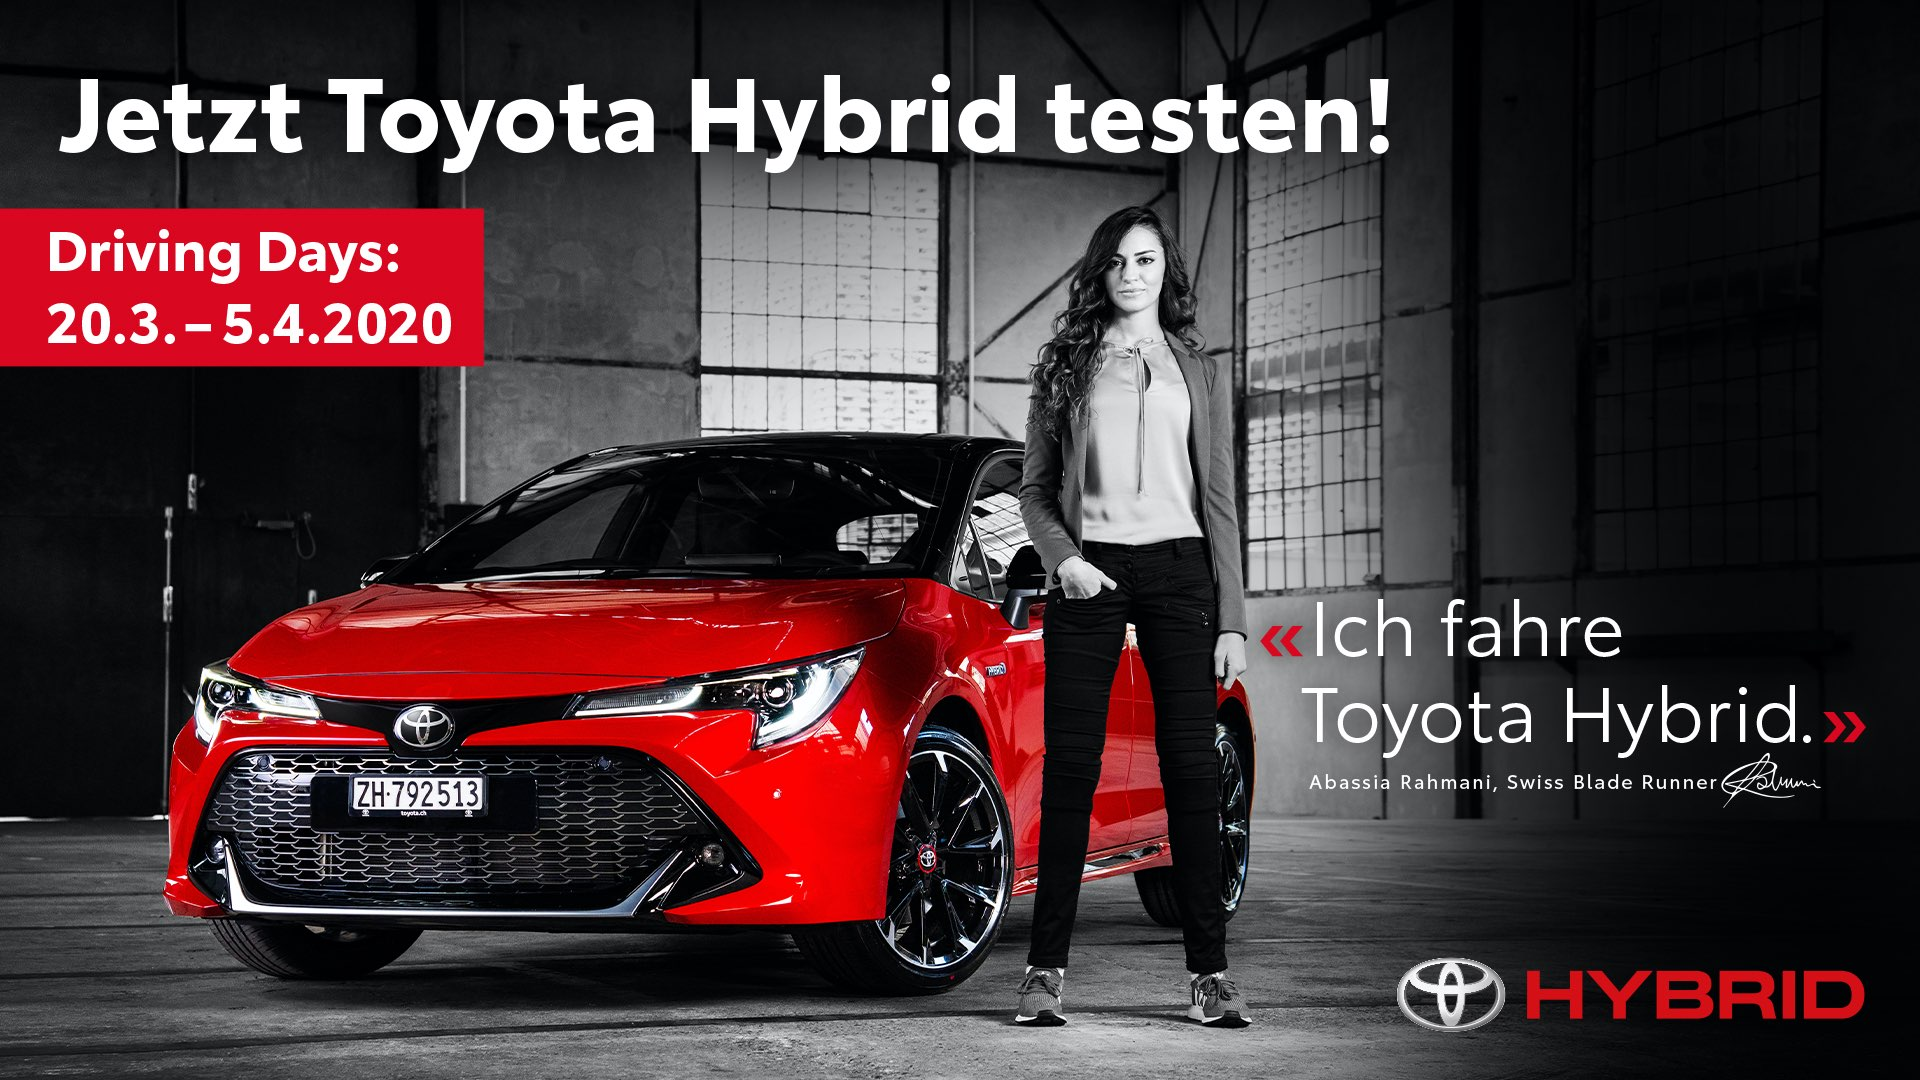 Bild zum Make up & Fashion Blog - toyota-kampagne--ID14562-1.jpeg?v=1585842234